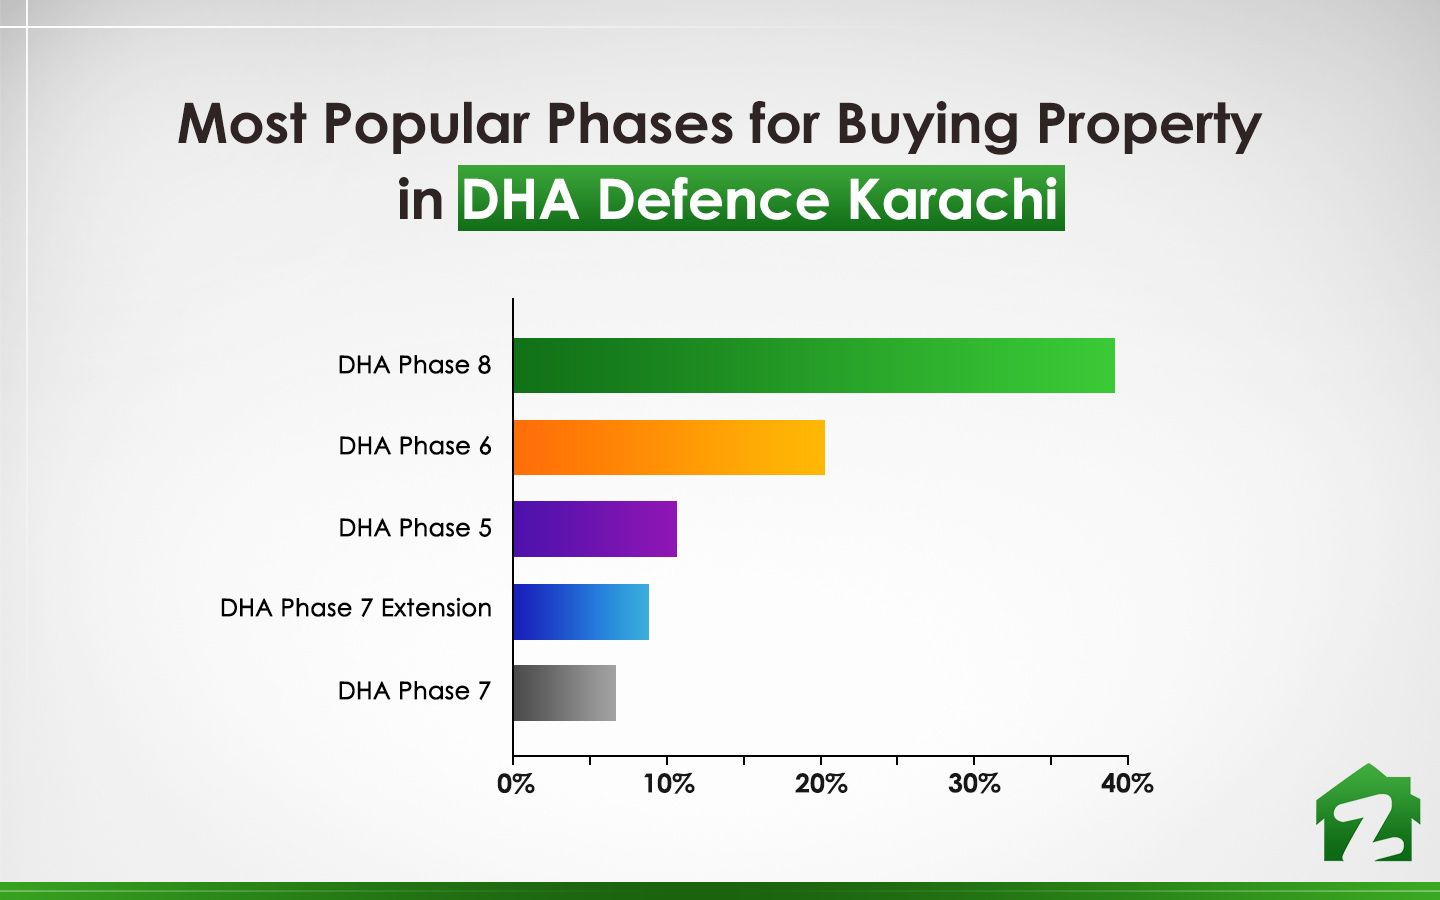 Phase 8 in Defence Karachi tops the list of popular phases for buying property